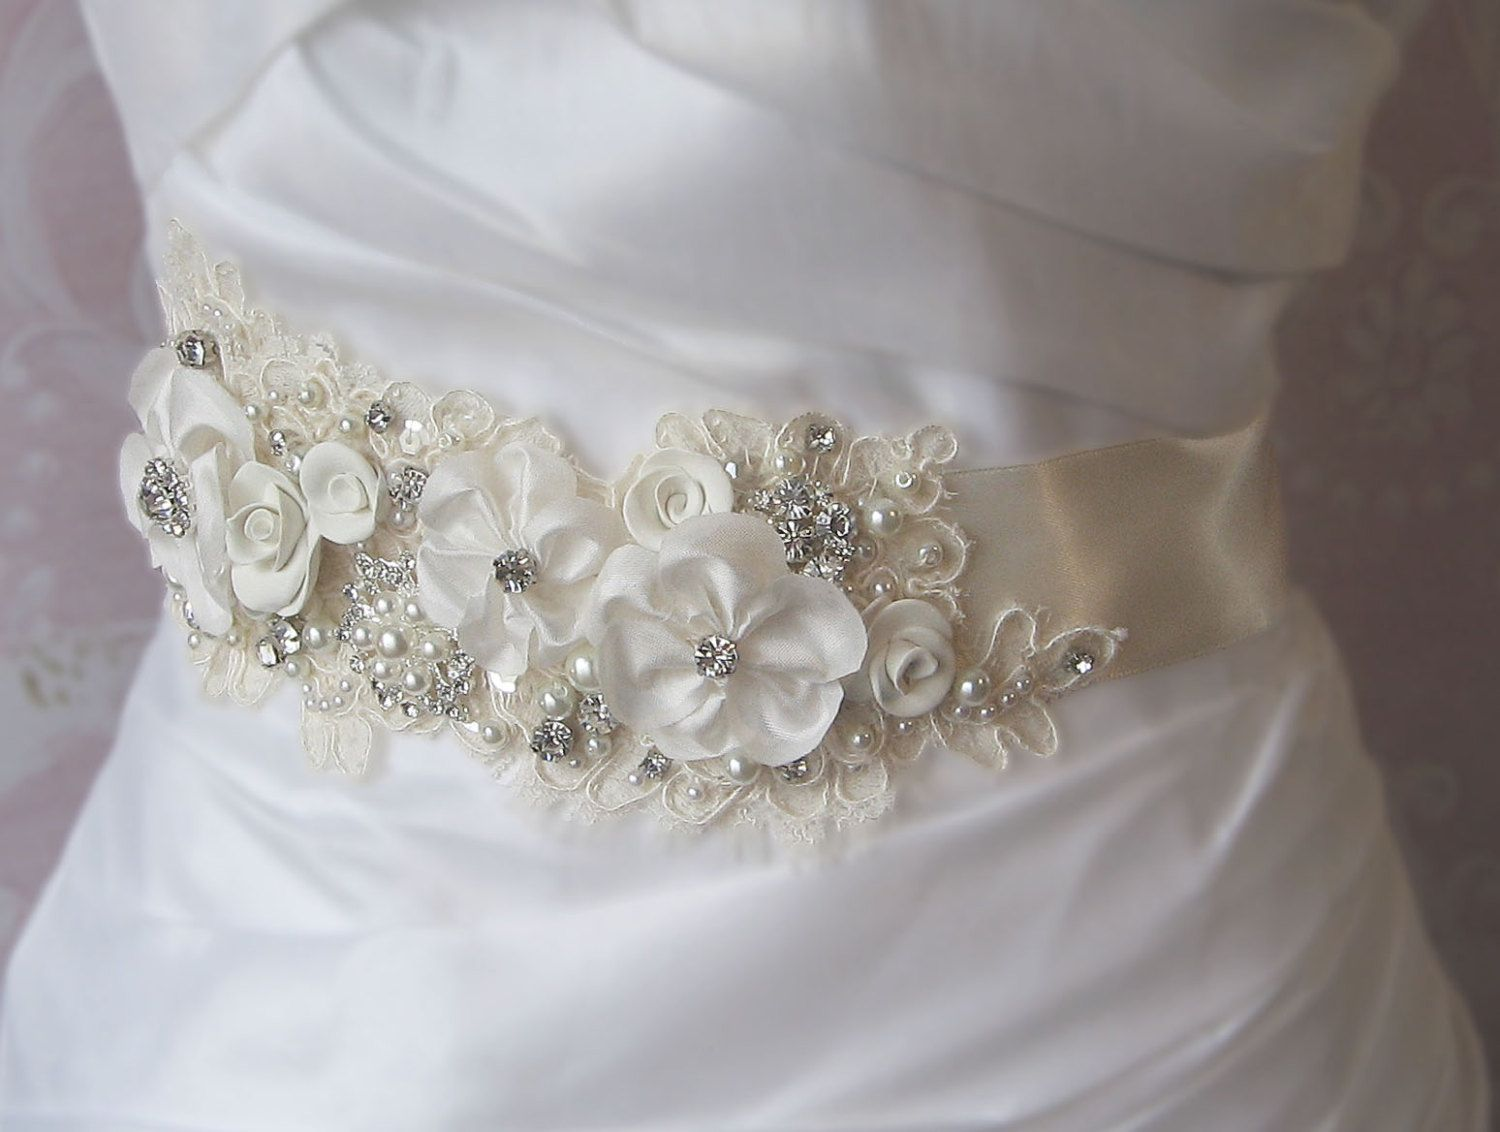 Flower and Pearl Wedding Sashes